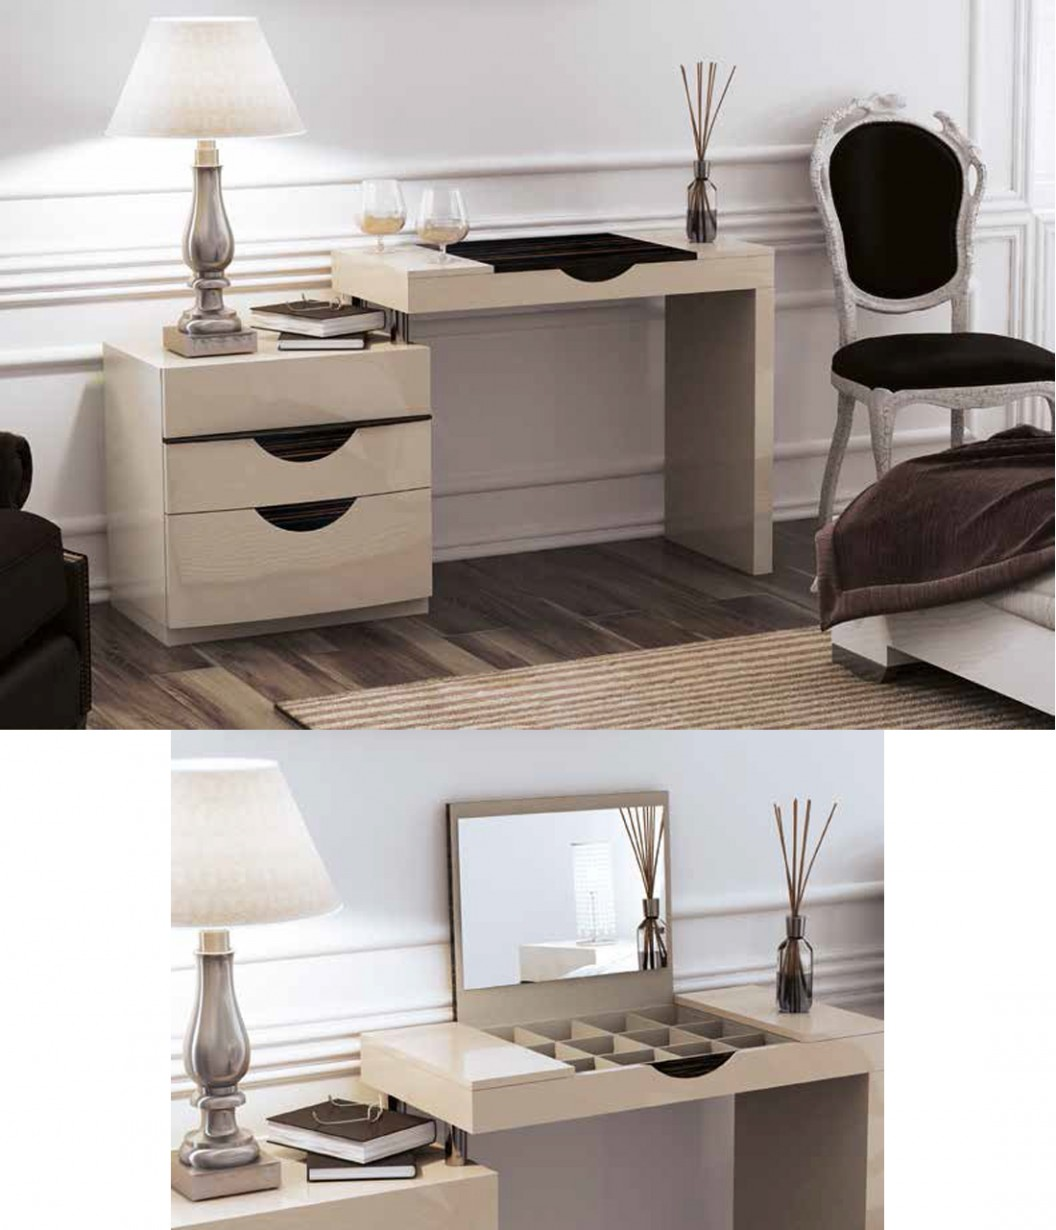 Mueble tocador moderno stunning with mueble tocador - Mueble tocador moderno ...